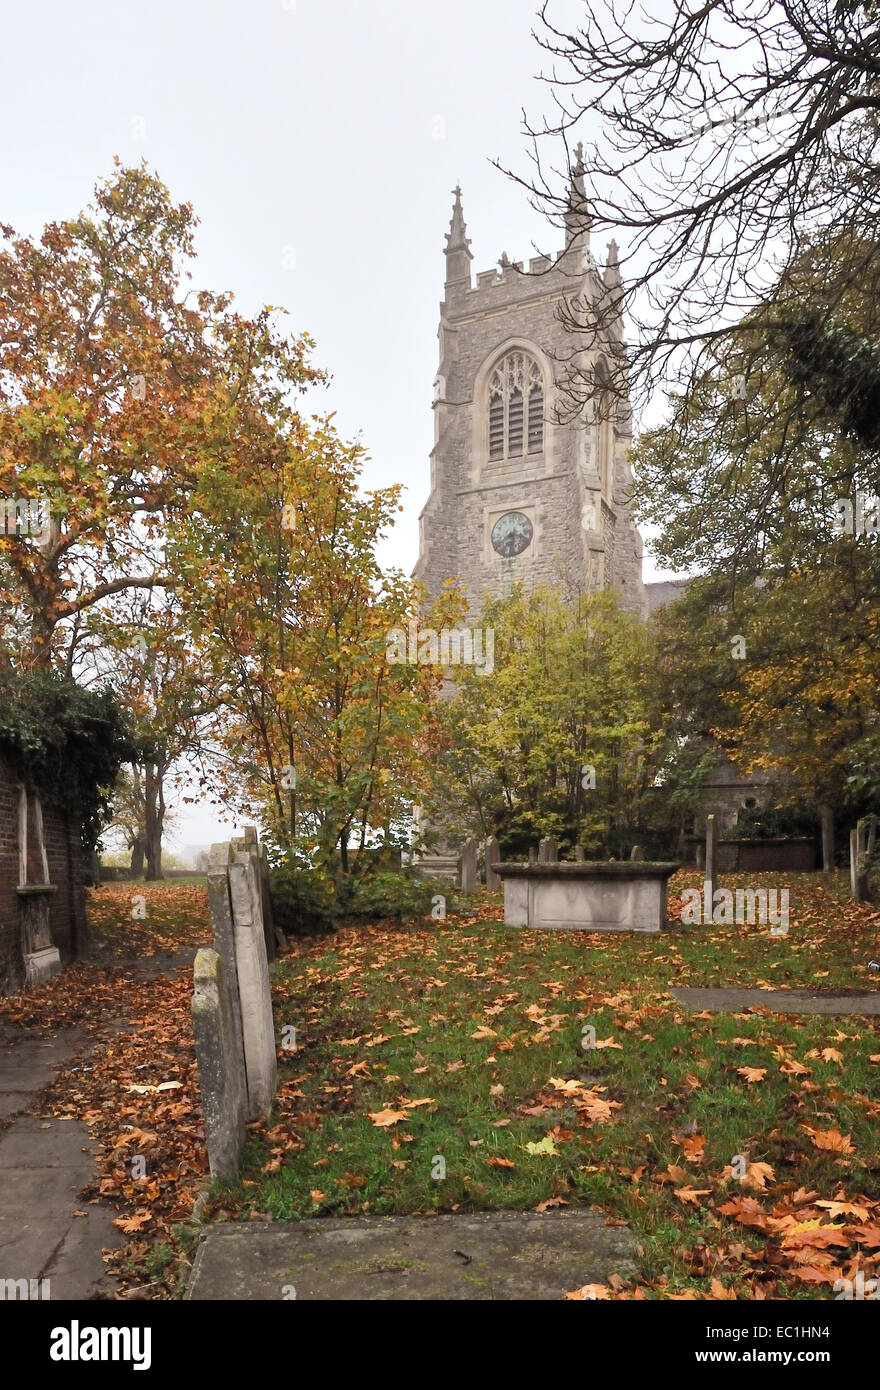 Dickens - St Mary's Church graveyard, Chatham, Kent, where English novelist Charles Dickens would wander as a boy, - Stock Image